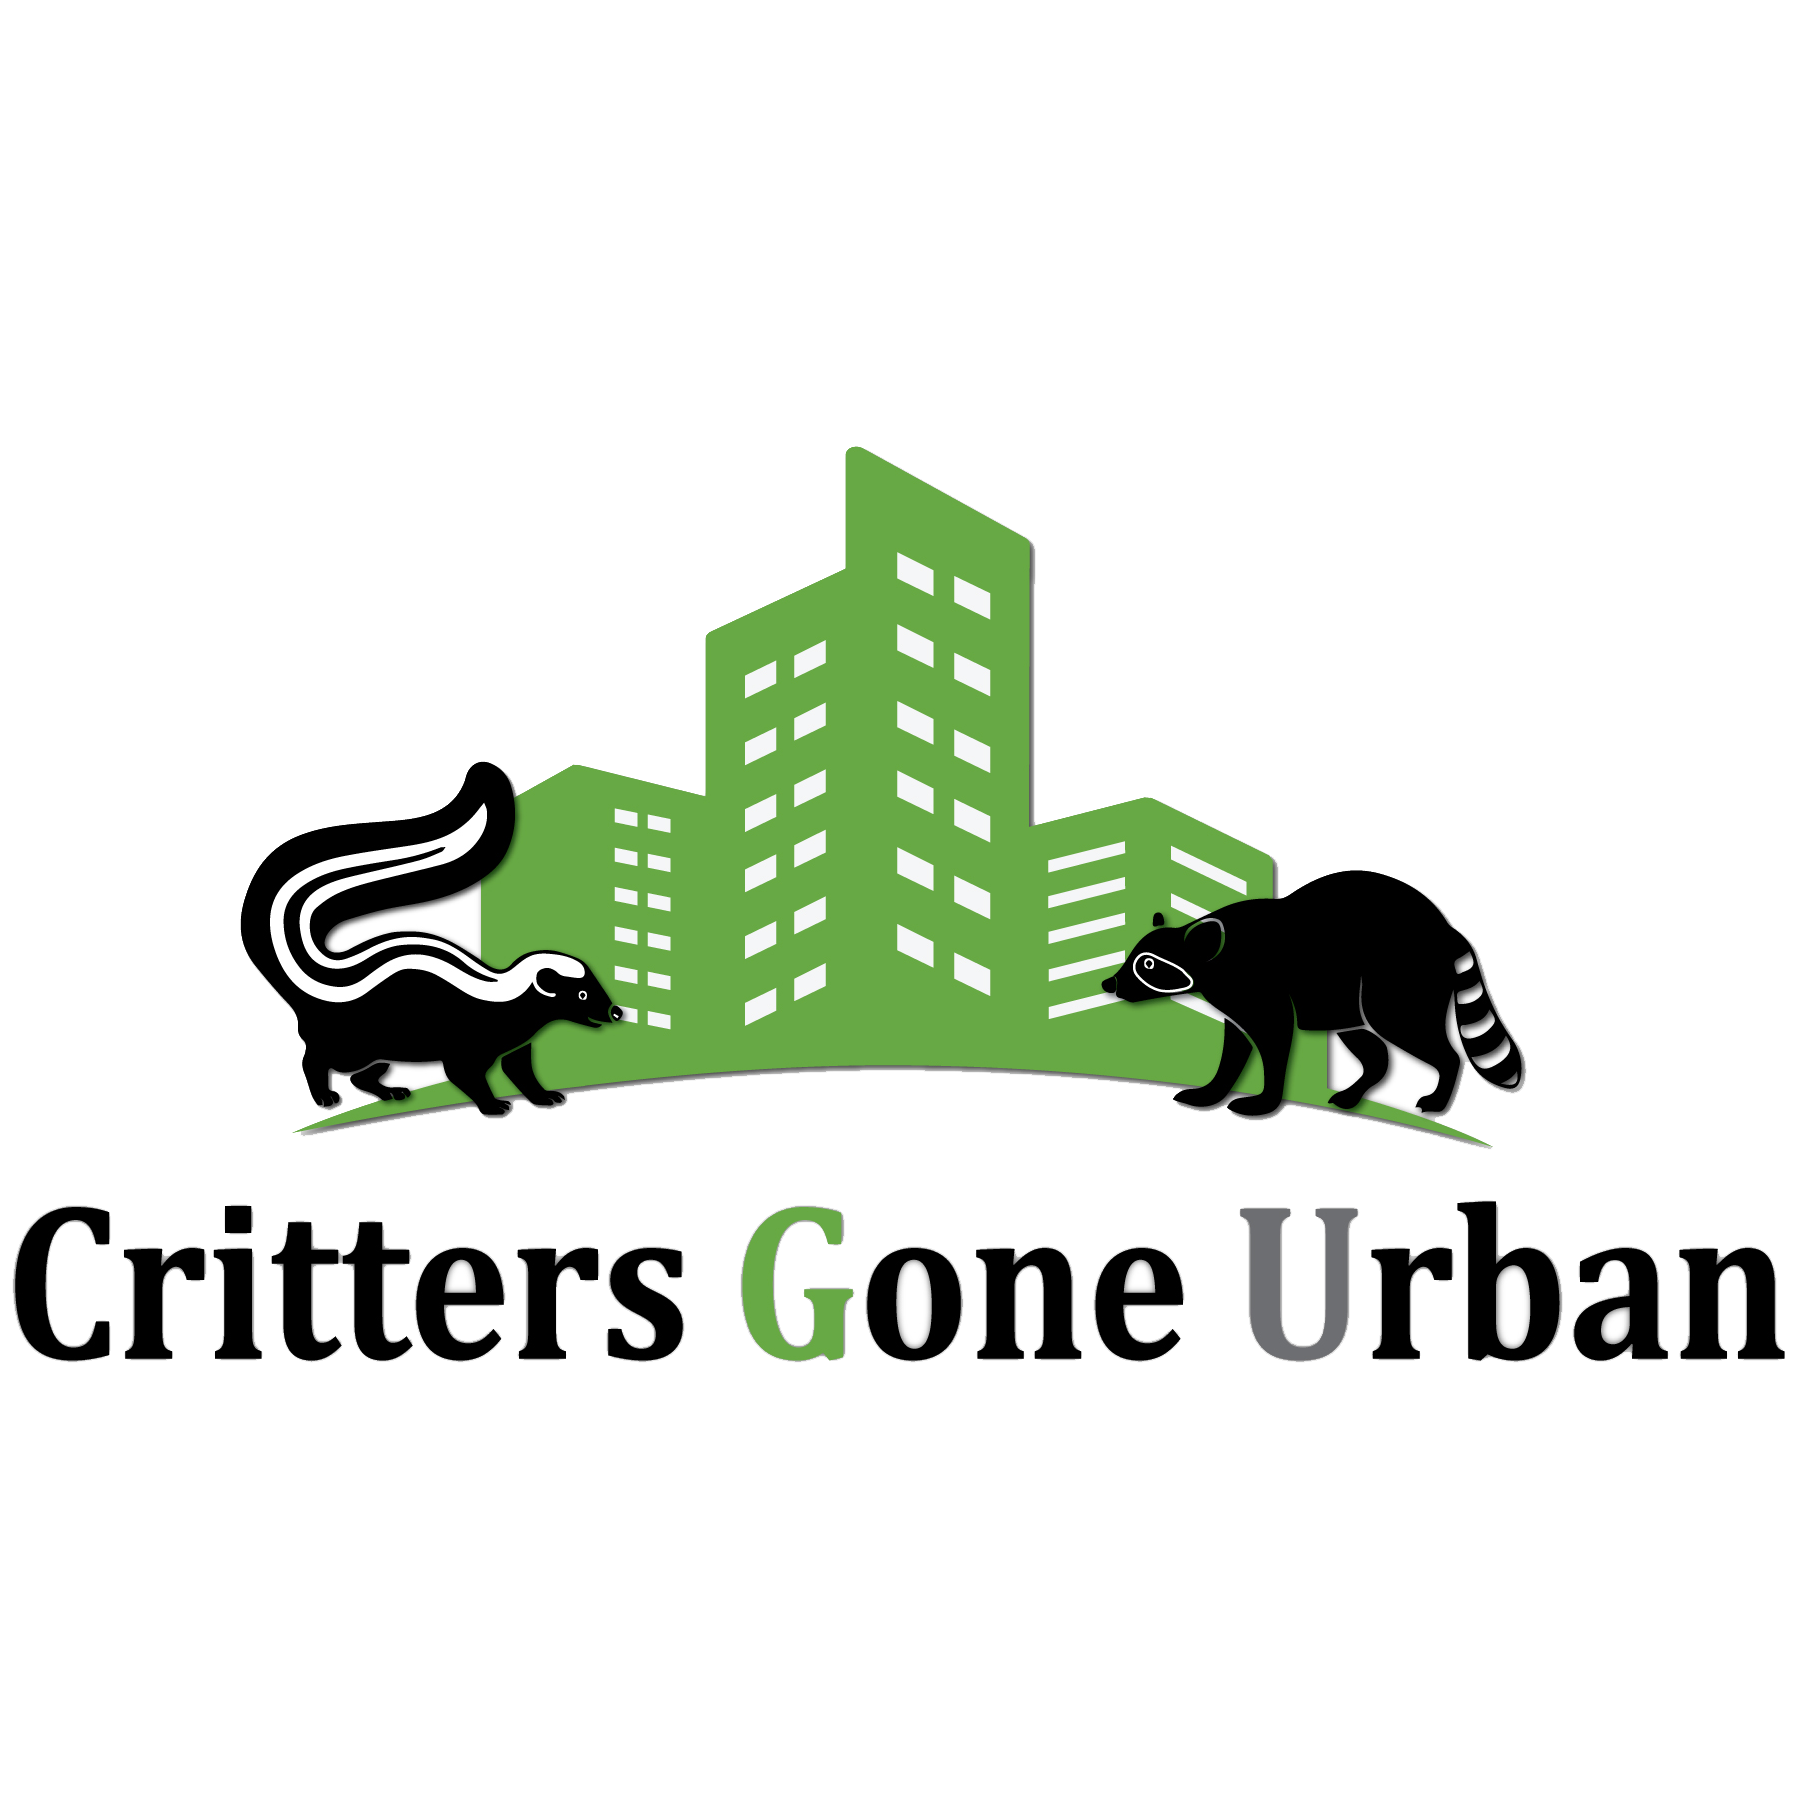 Critters Gone Urban, LLC